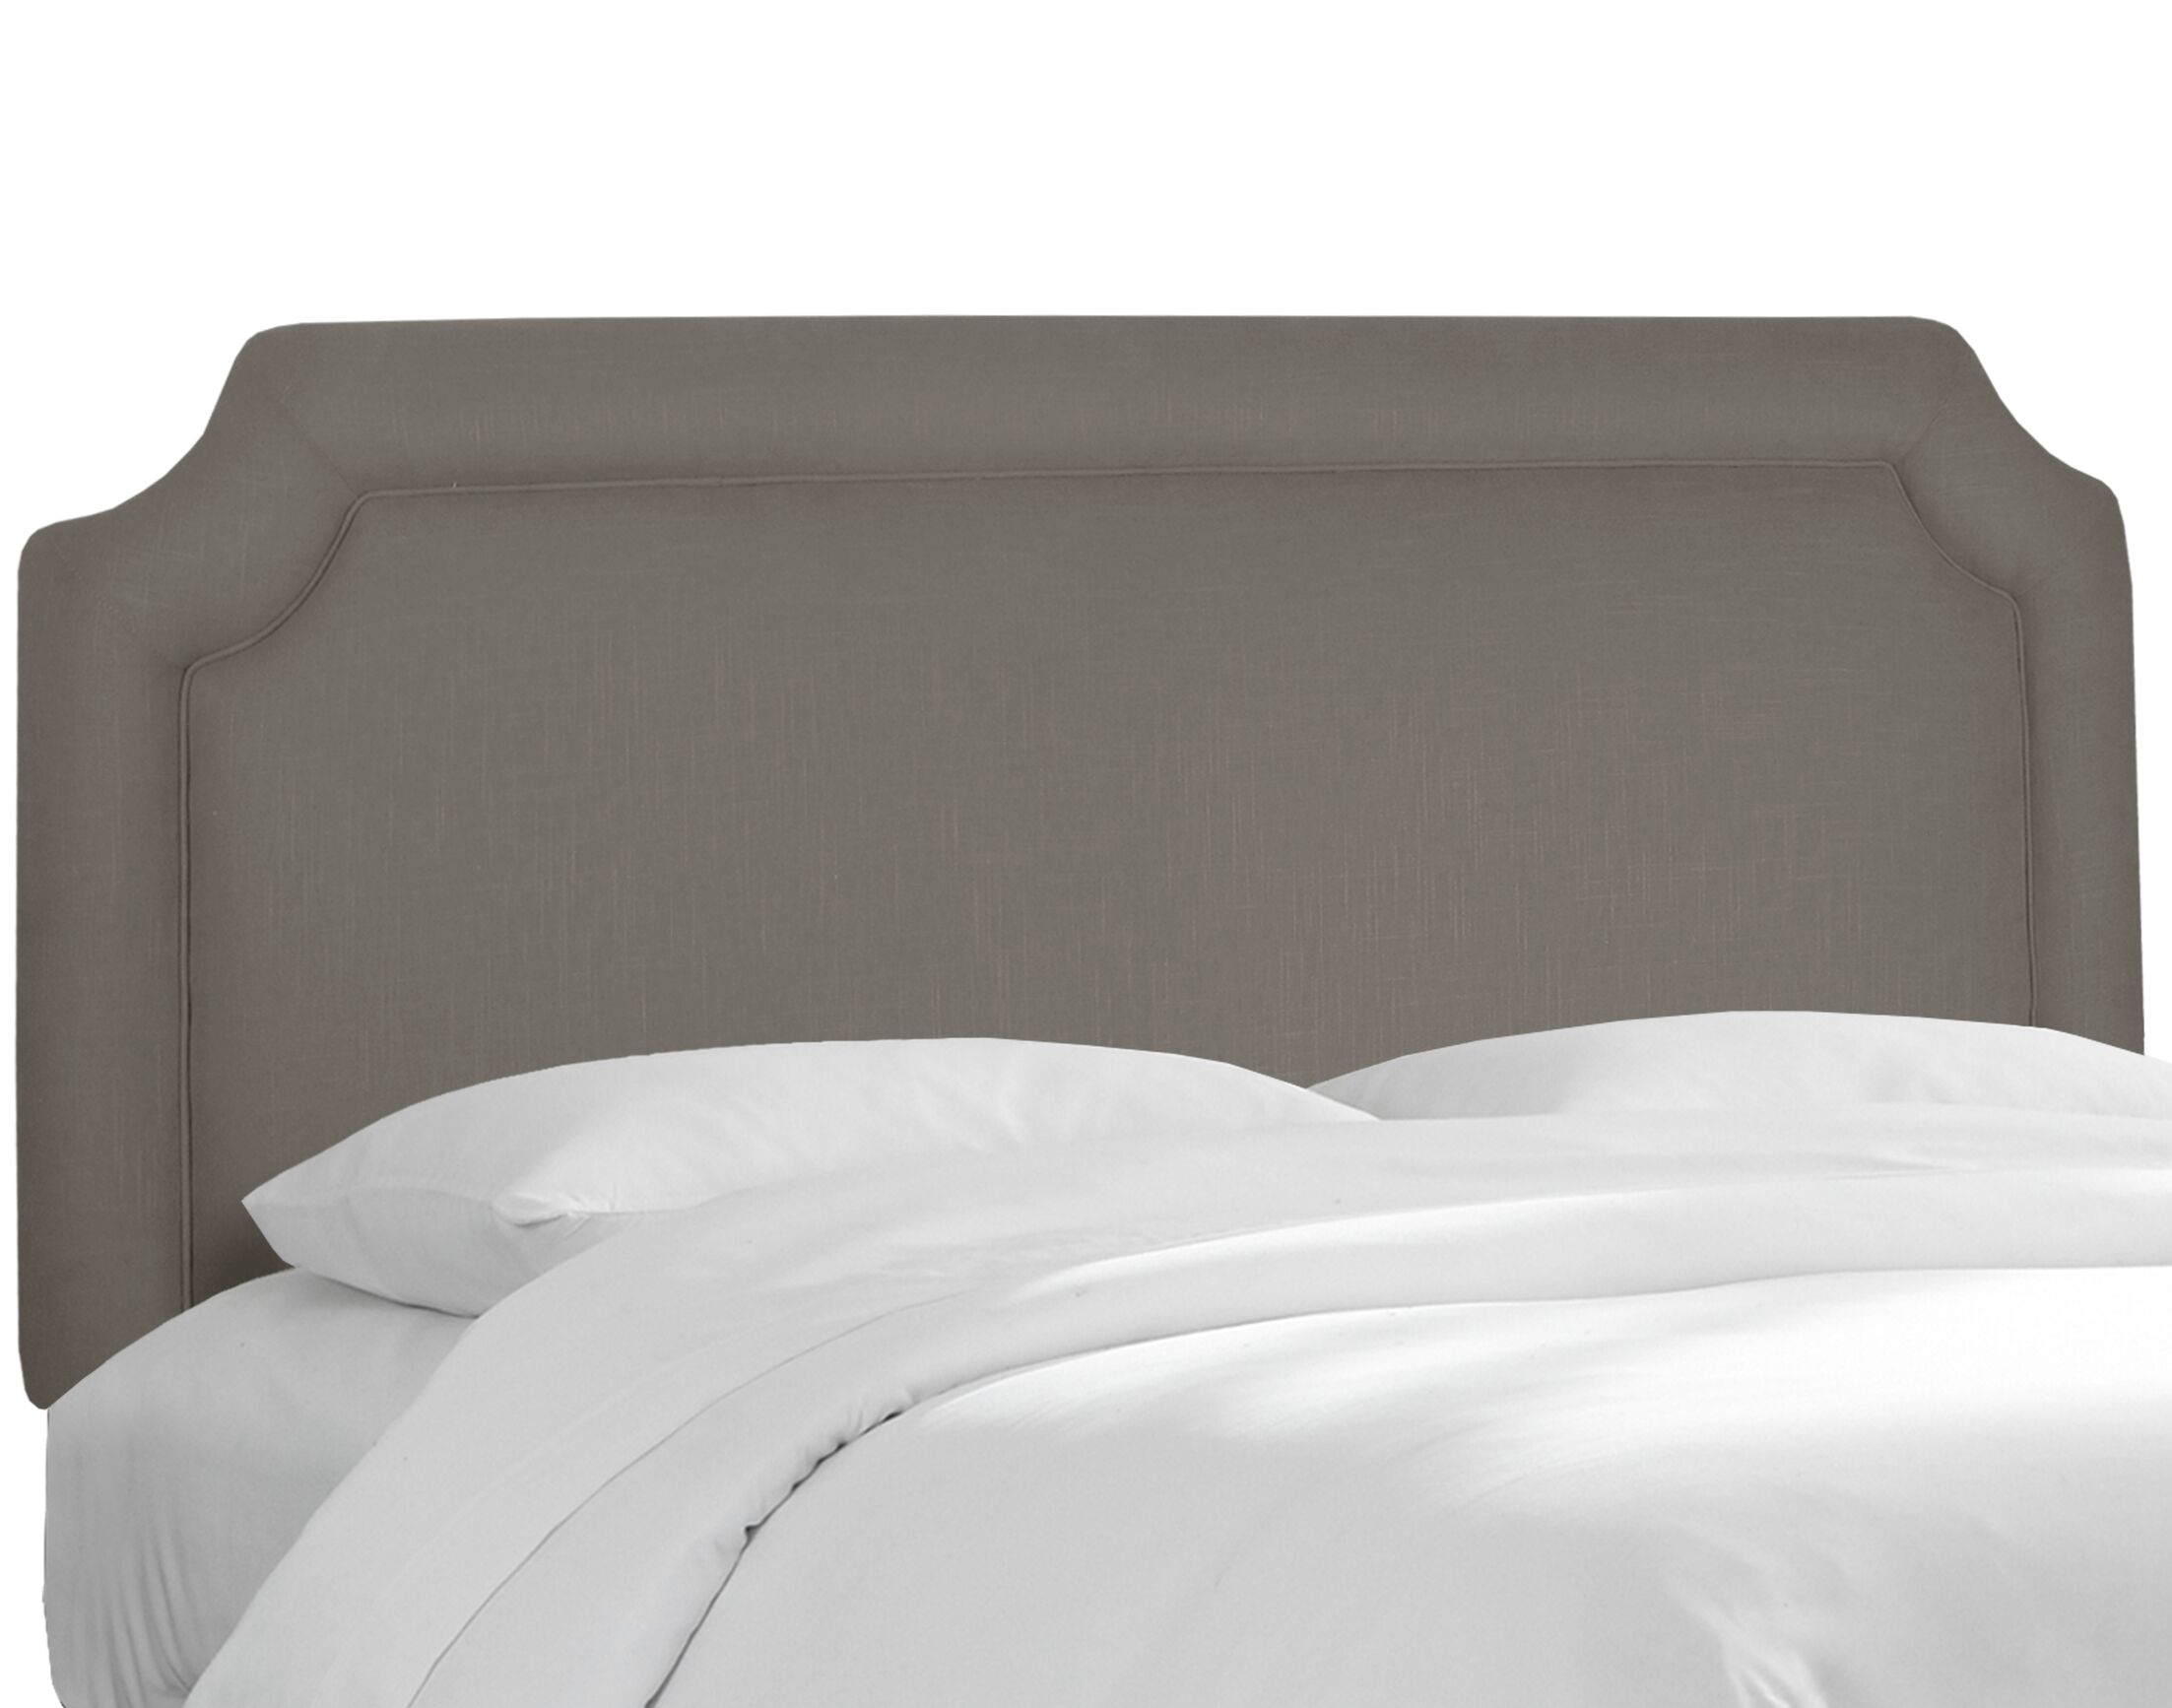 Twill Notched Upholstered Panel Headboard Upholstery: Twill Grey, Size: California King